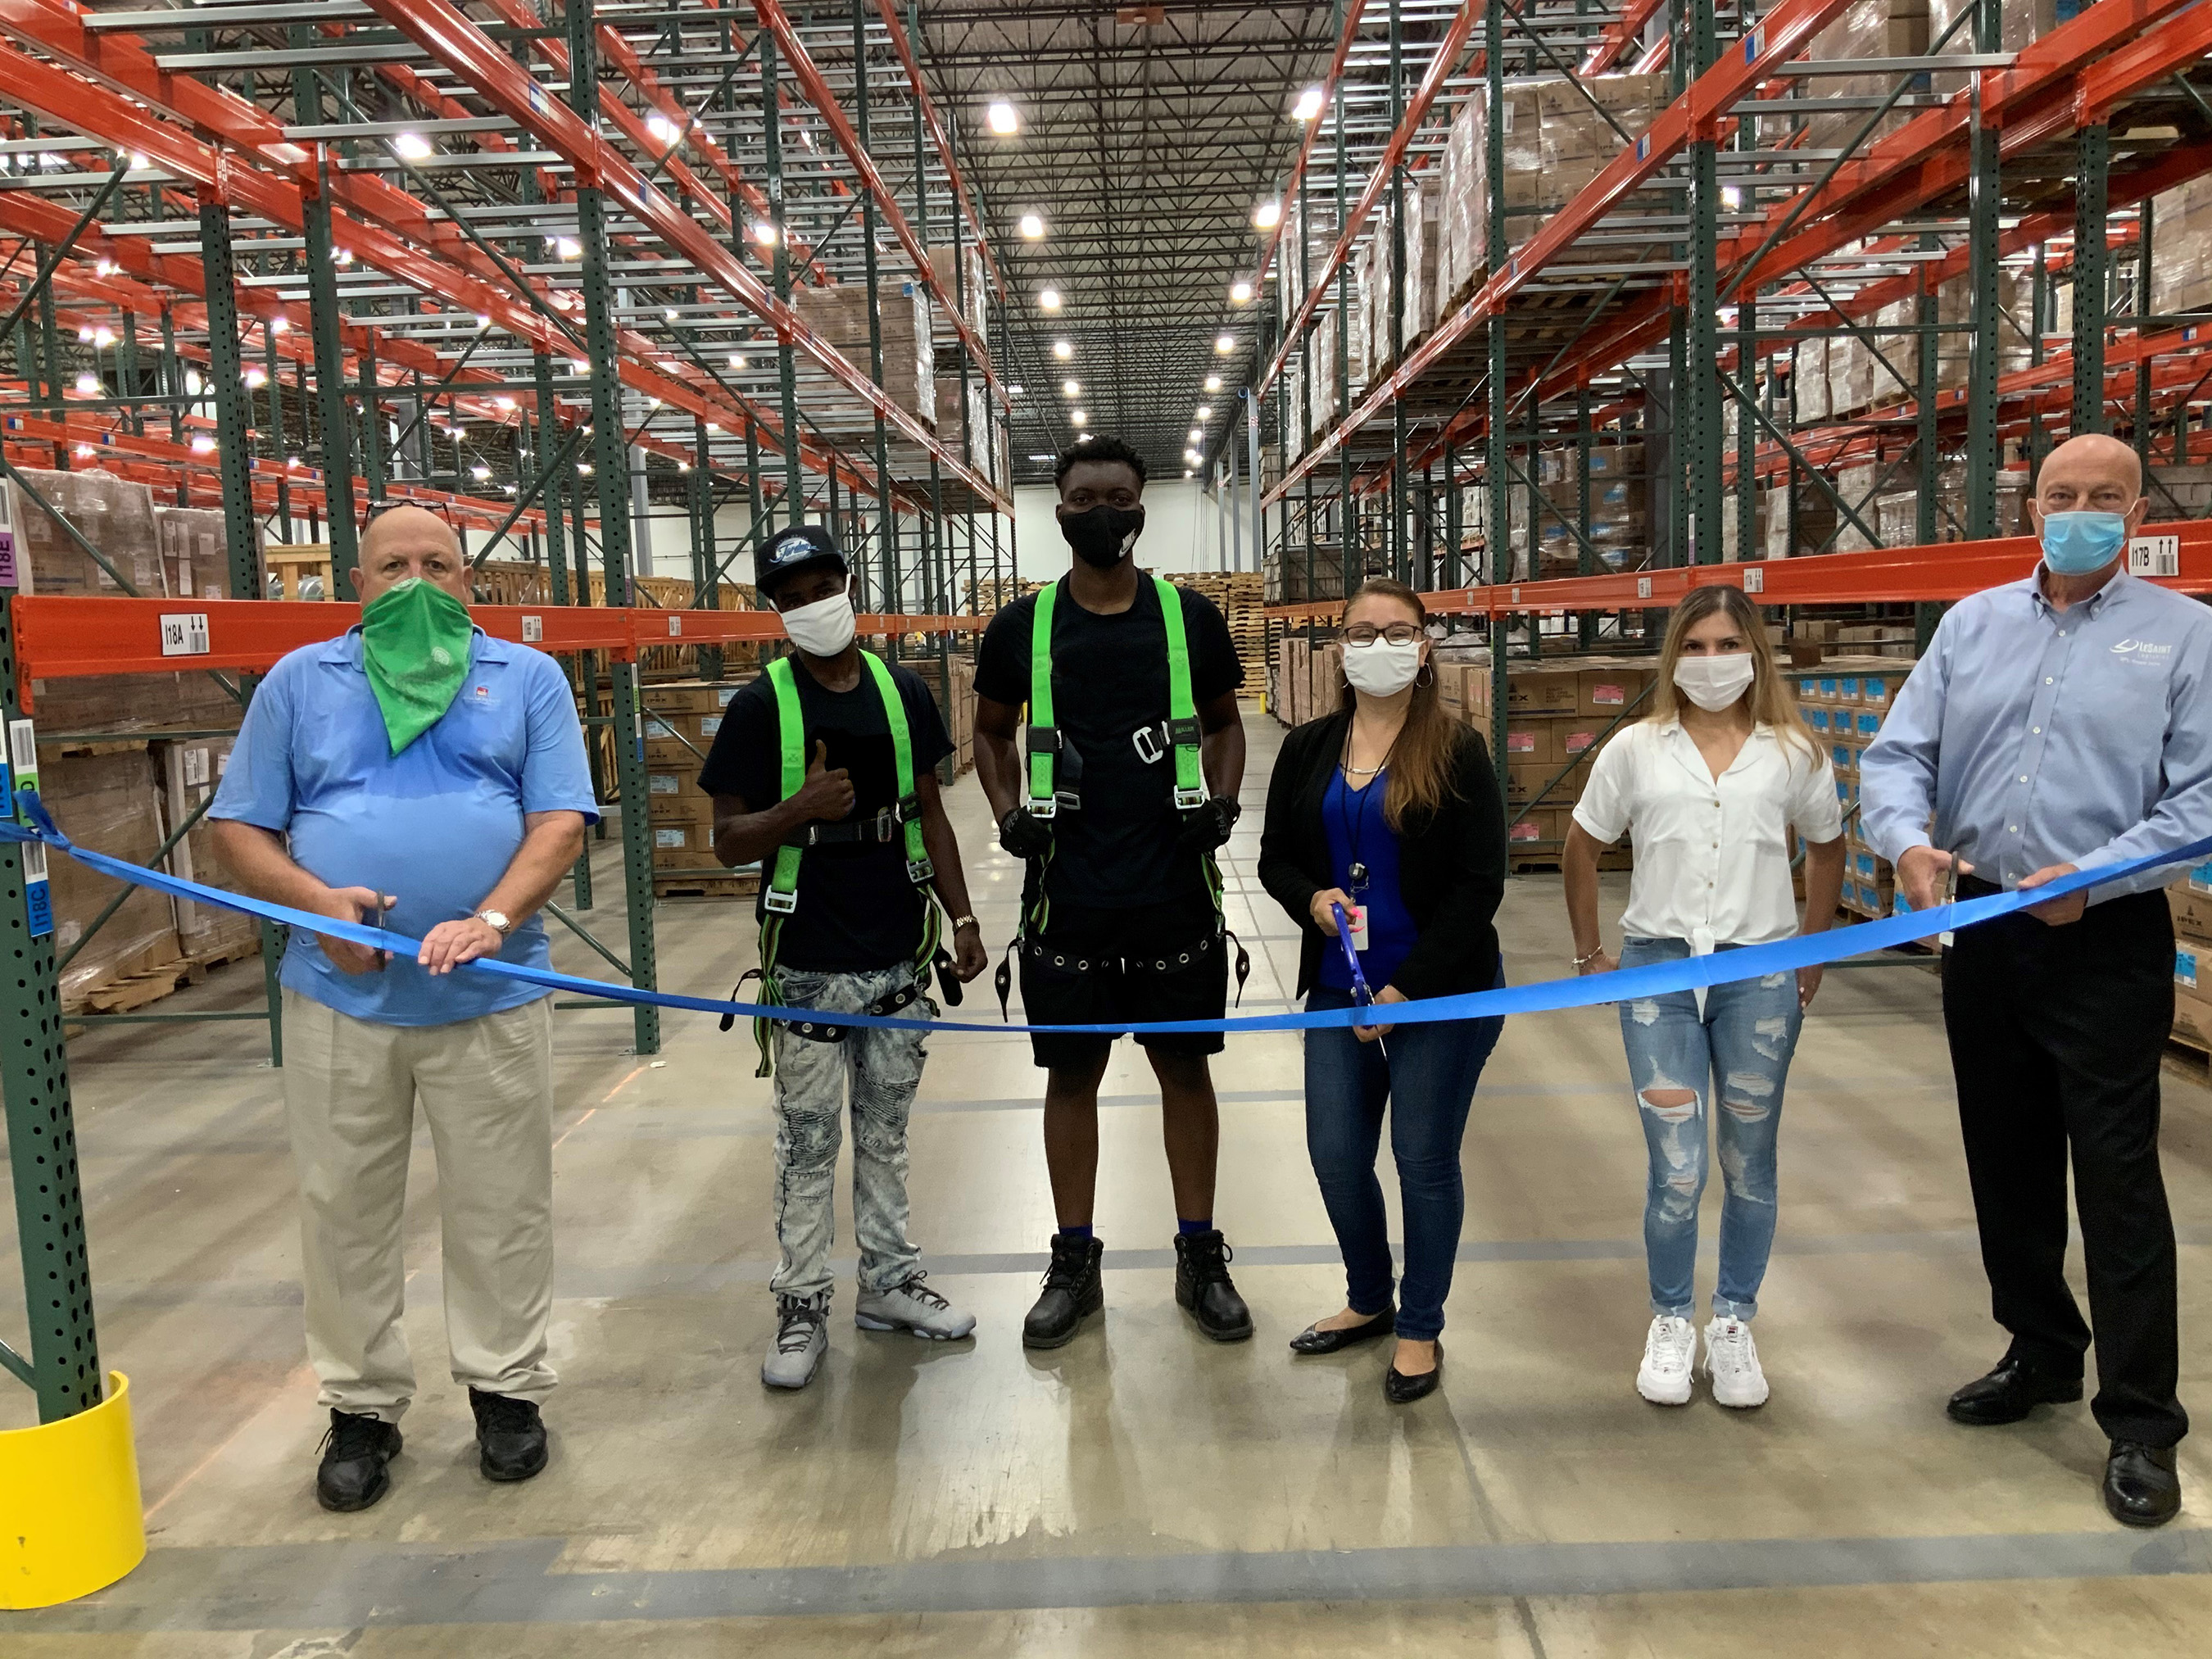 IPEX Celebrates the Grand Opening of the New Joilet Distribution Center